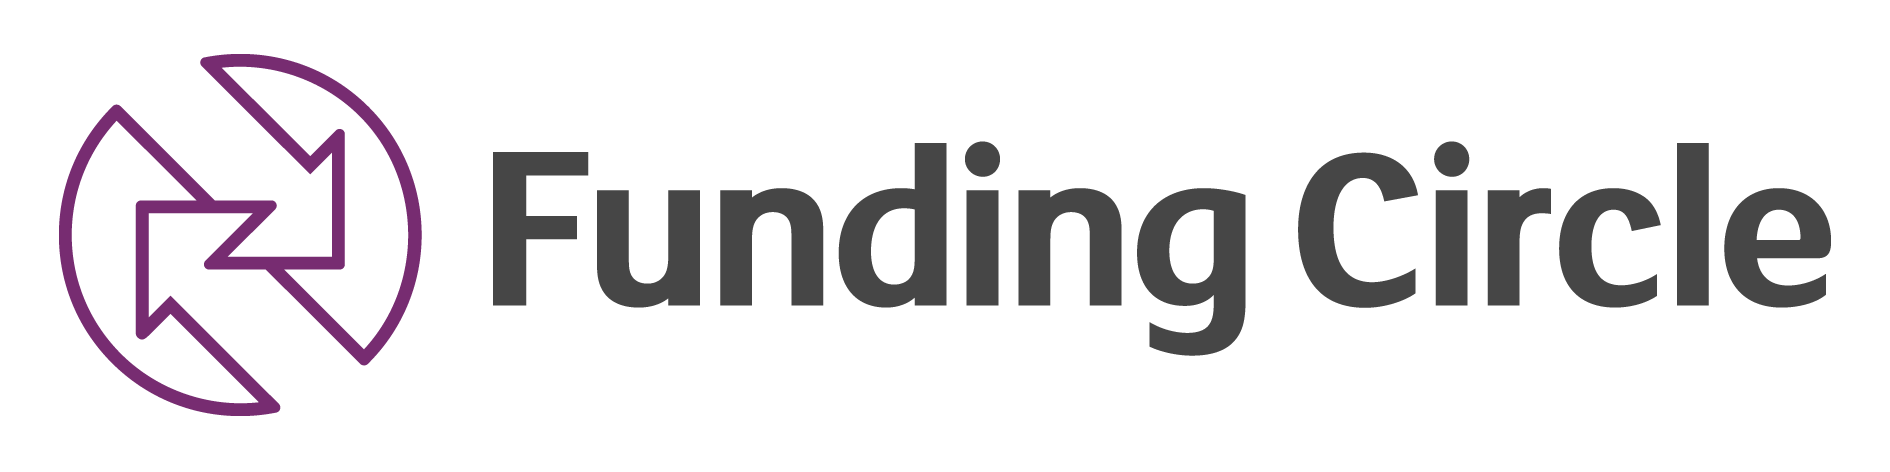 Funding circle logo png. Sme income fund to